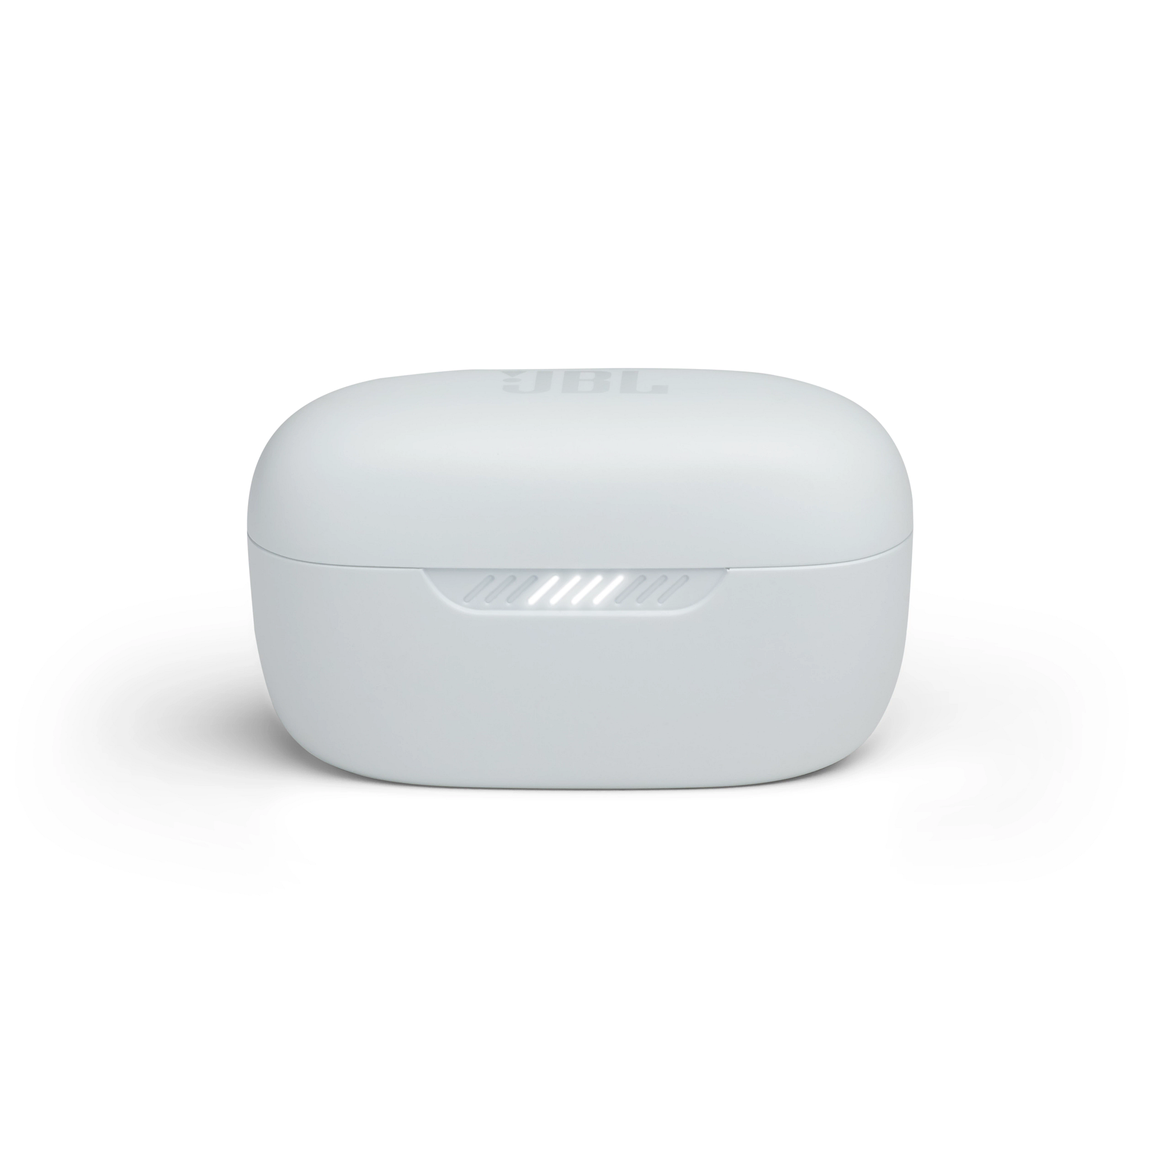 JBL_LIVE_FREE_NC TWS_Product image_Case Front_White